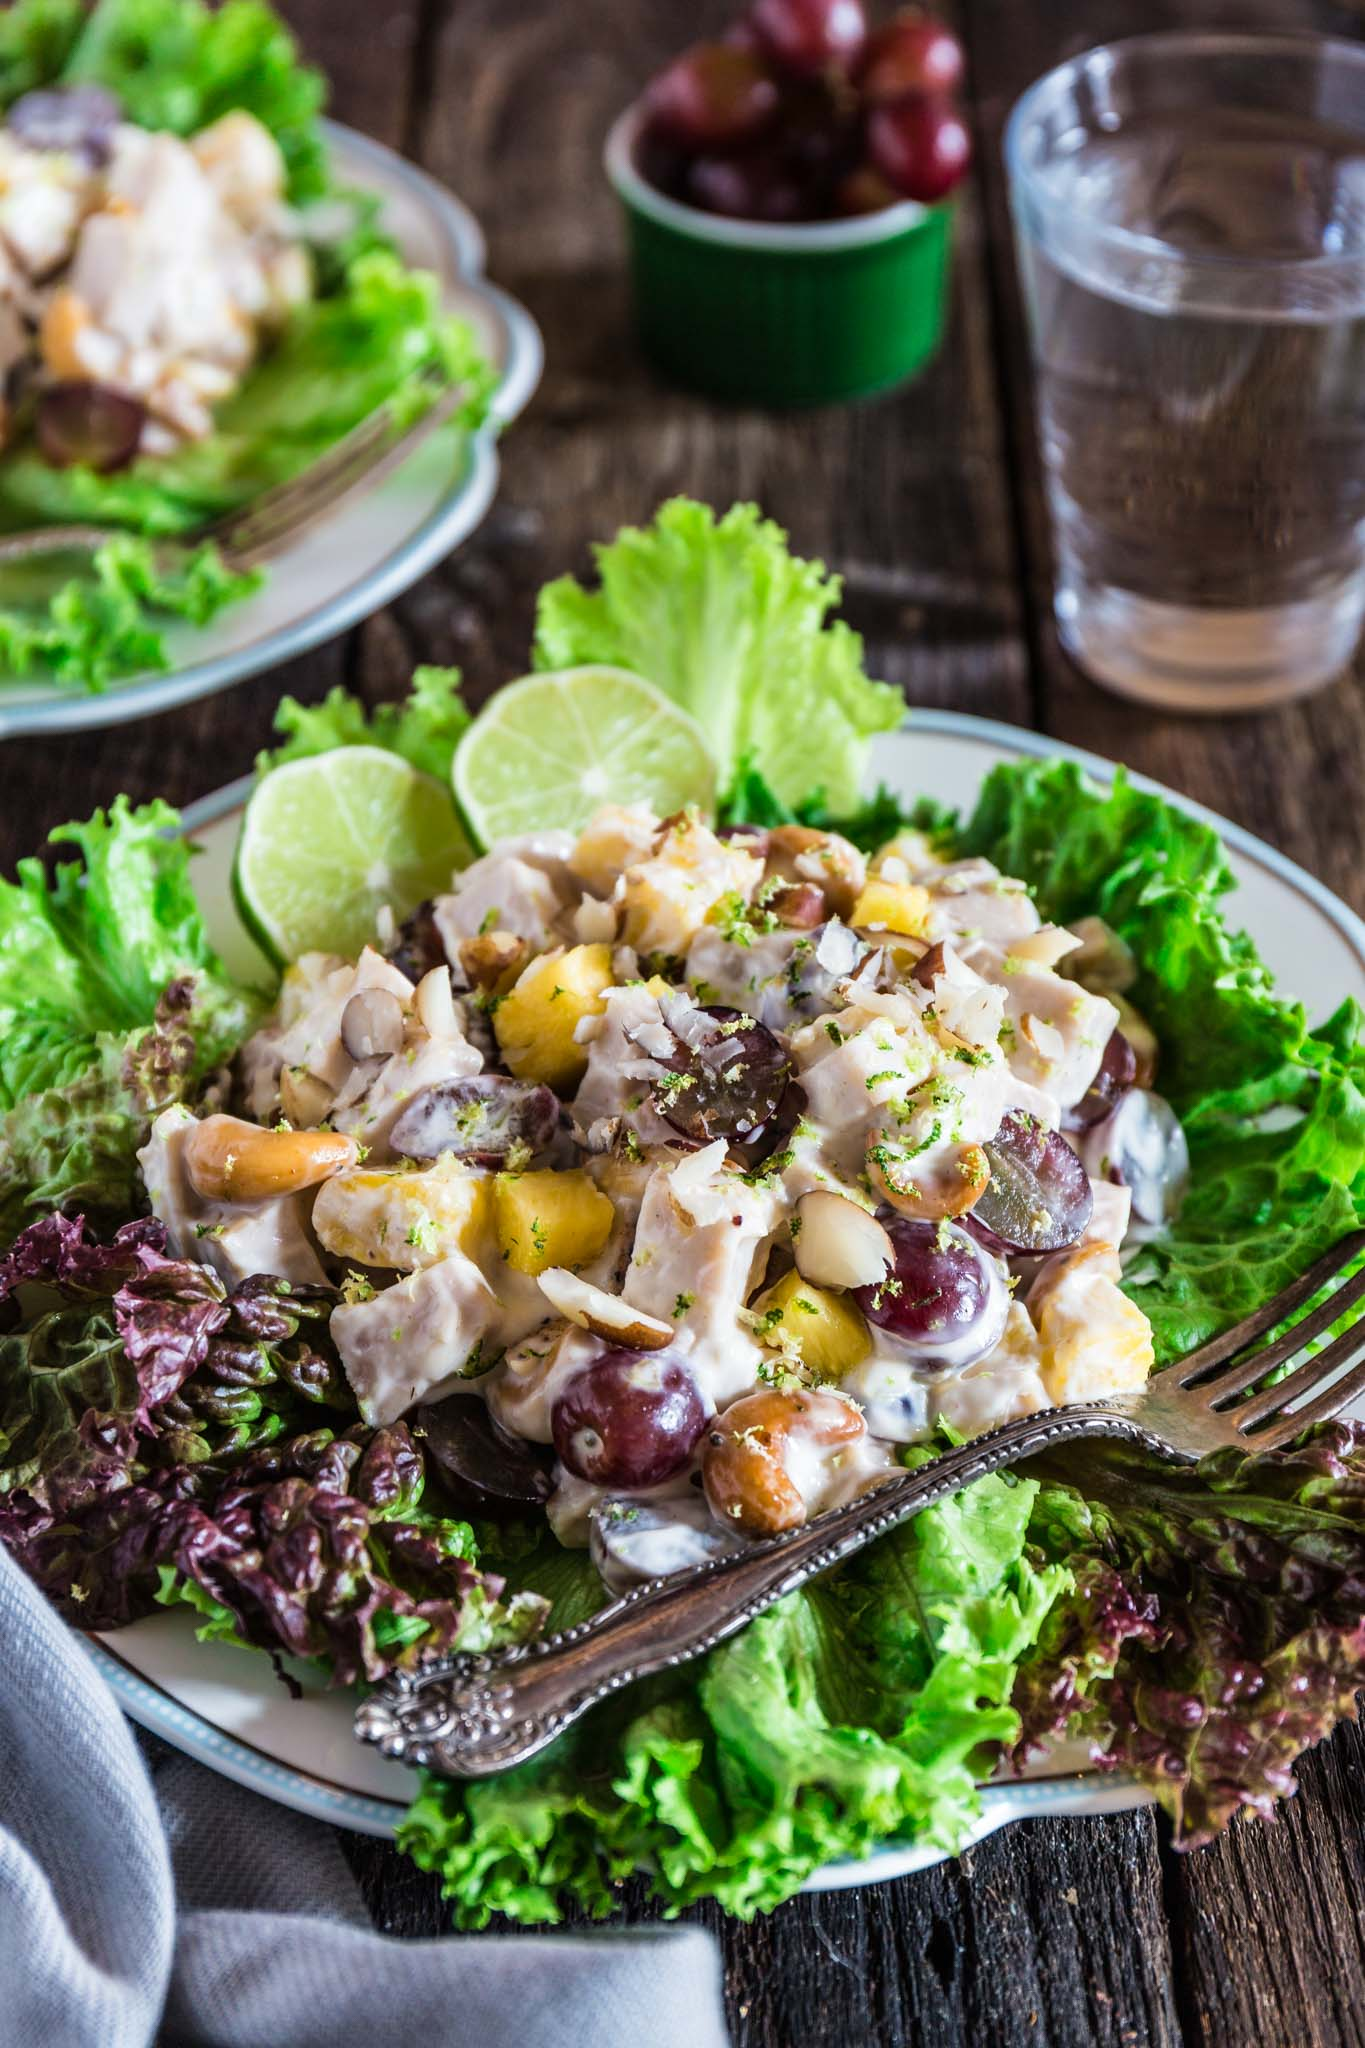 Pineapple Grape Turkey Salad   www.oliviascuisine.com   This delicious tropical twist on a creamy turkey salad makes this the summer salad nobody can resist! Perfect in sandwiches, spread on crackers or just as is. (Recipe and food photography by @oliviascuisine.)